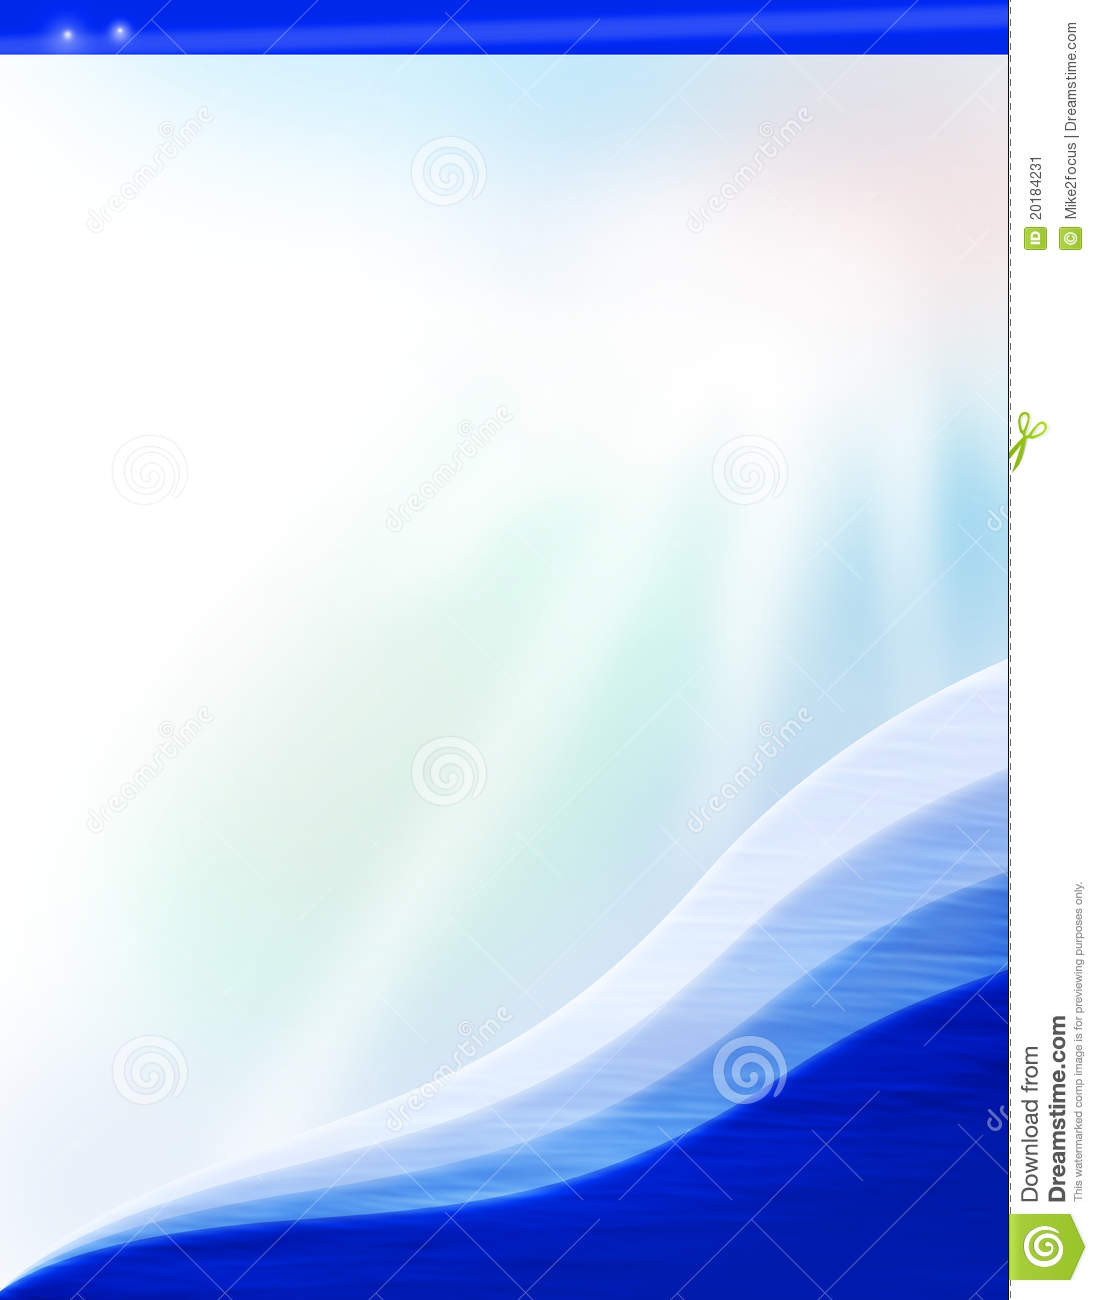 background picture in word document